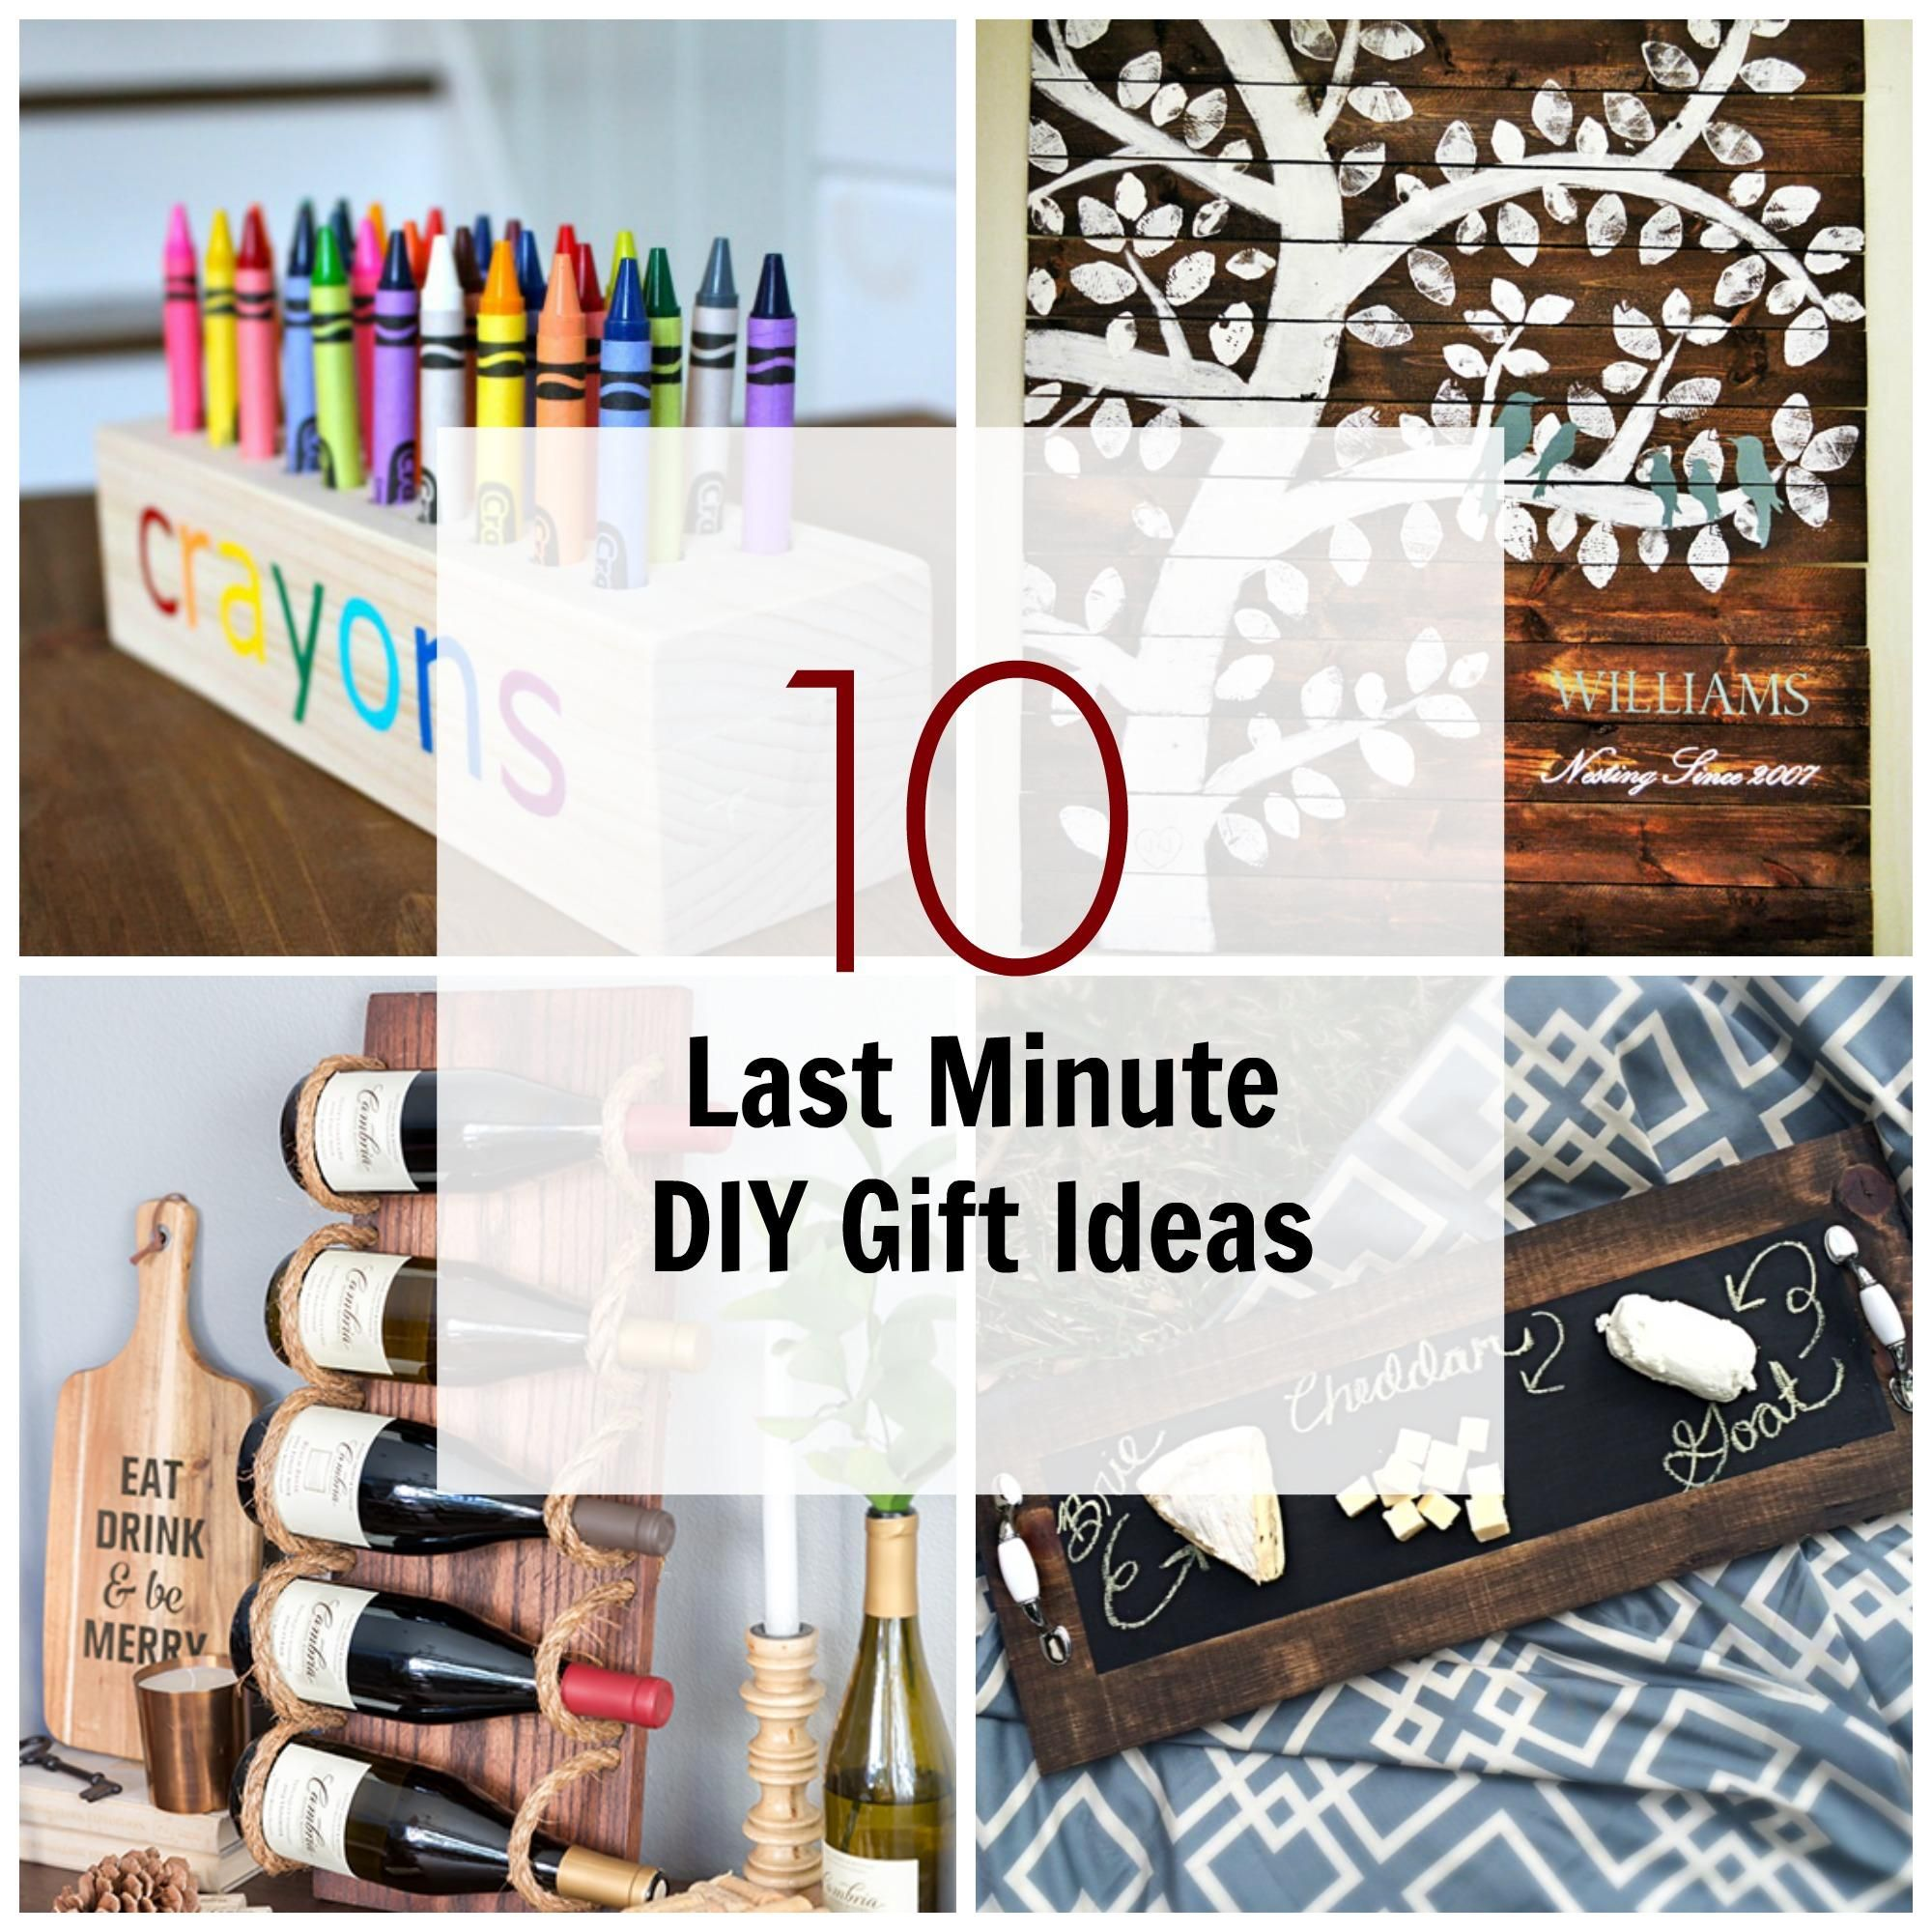 10 Last Minute Diy Wood Gifts That You Can Make Wood Gifts Wood Working Gifts Wood Diy